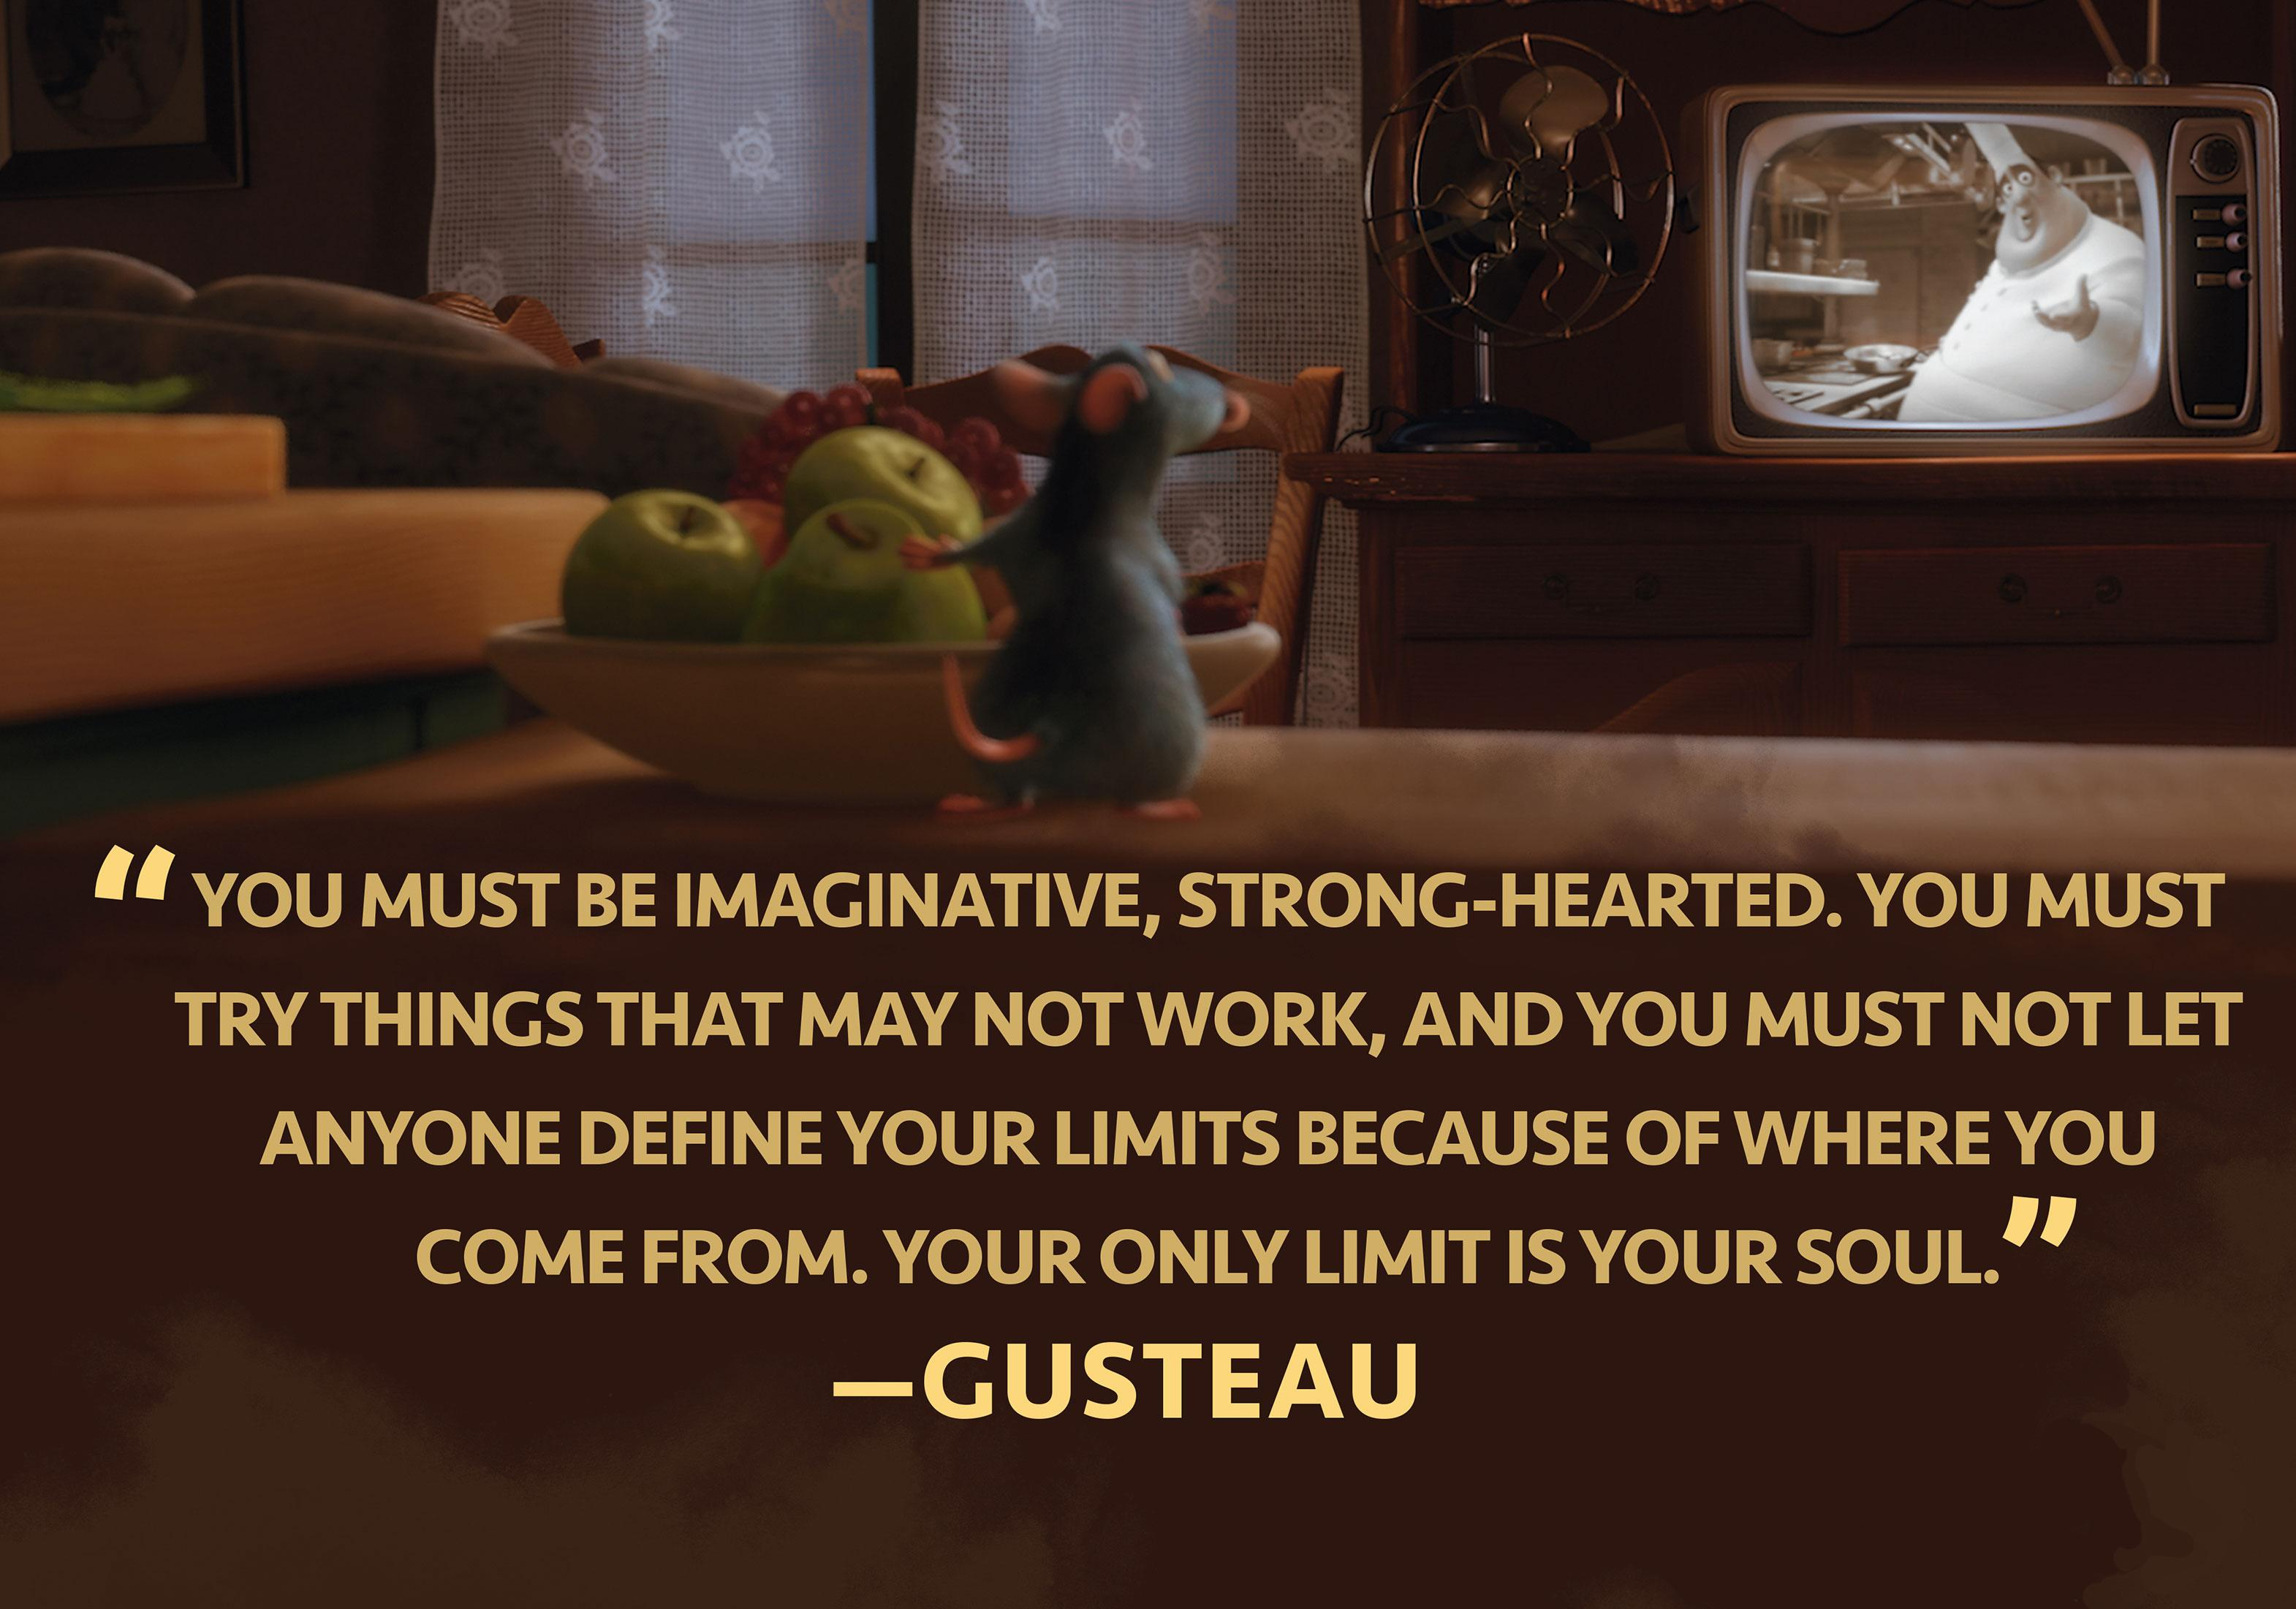 [Image] Great movie, and a great quote indeed.